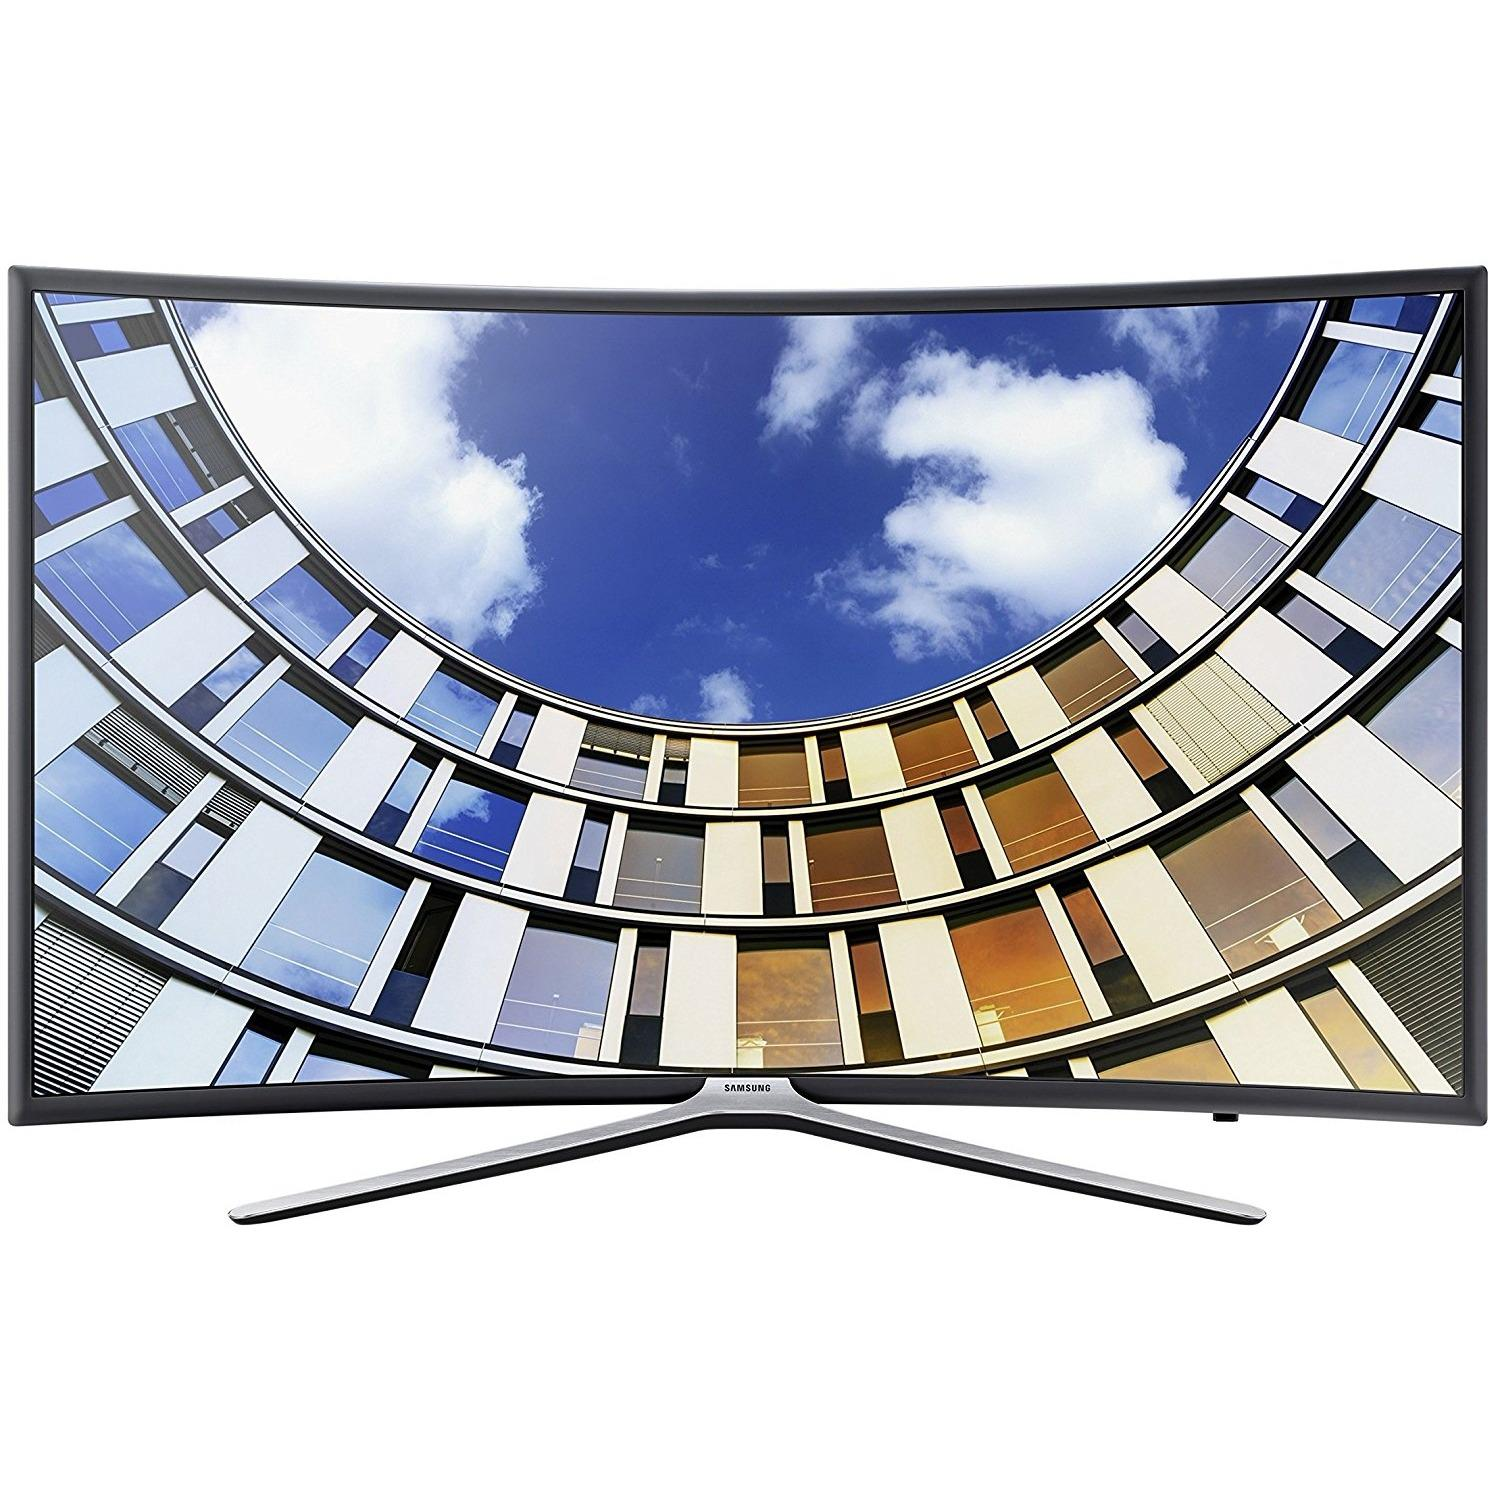 Samsung Series 6 138Cm 55 Inch Full Hd Curved Led Smart Tv 55M6300 Free Shipping